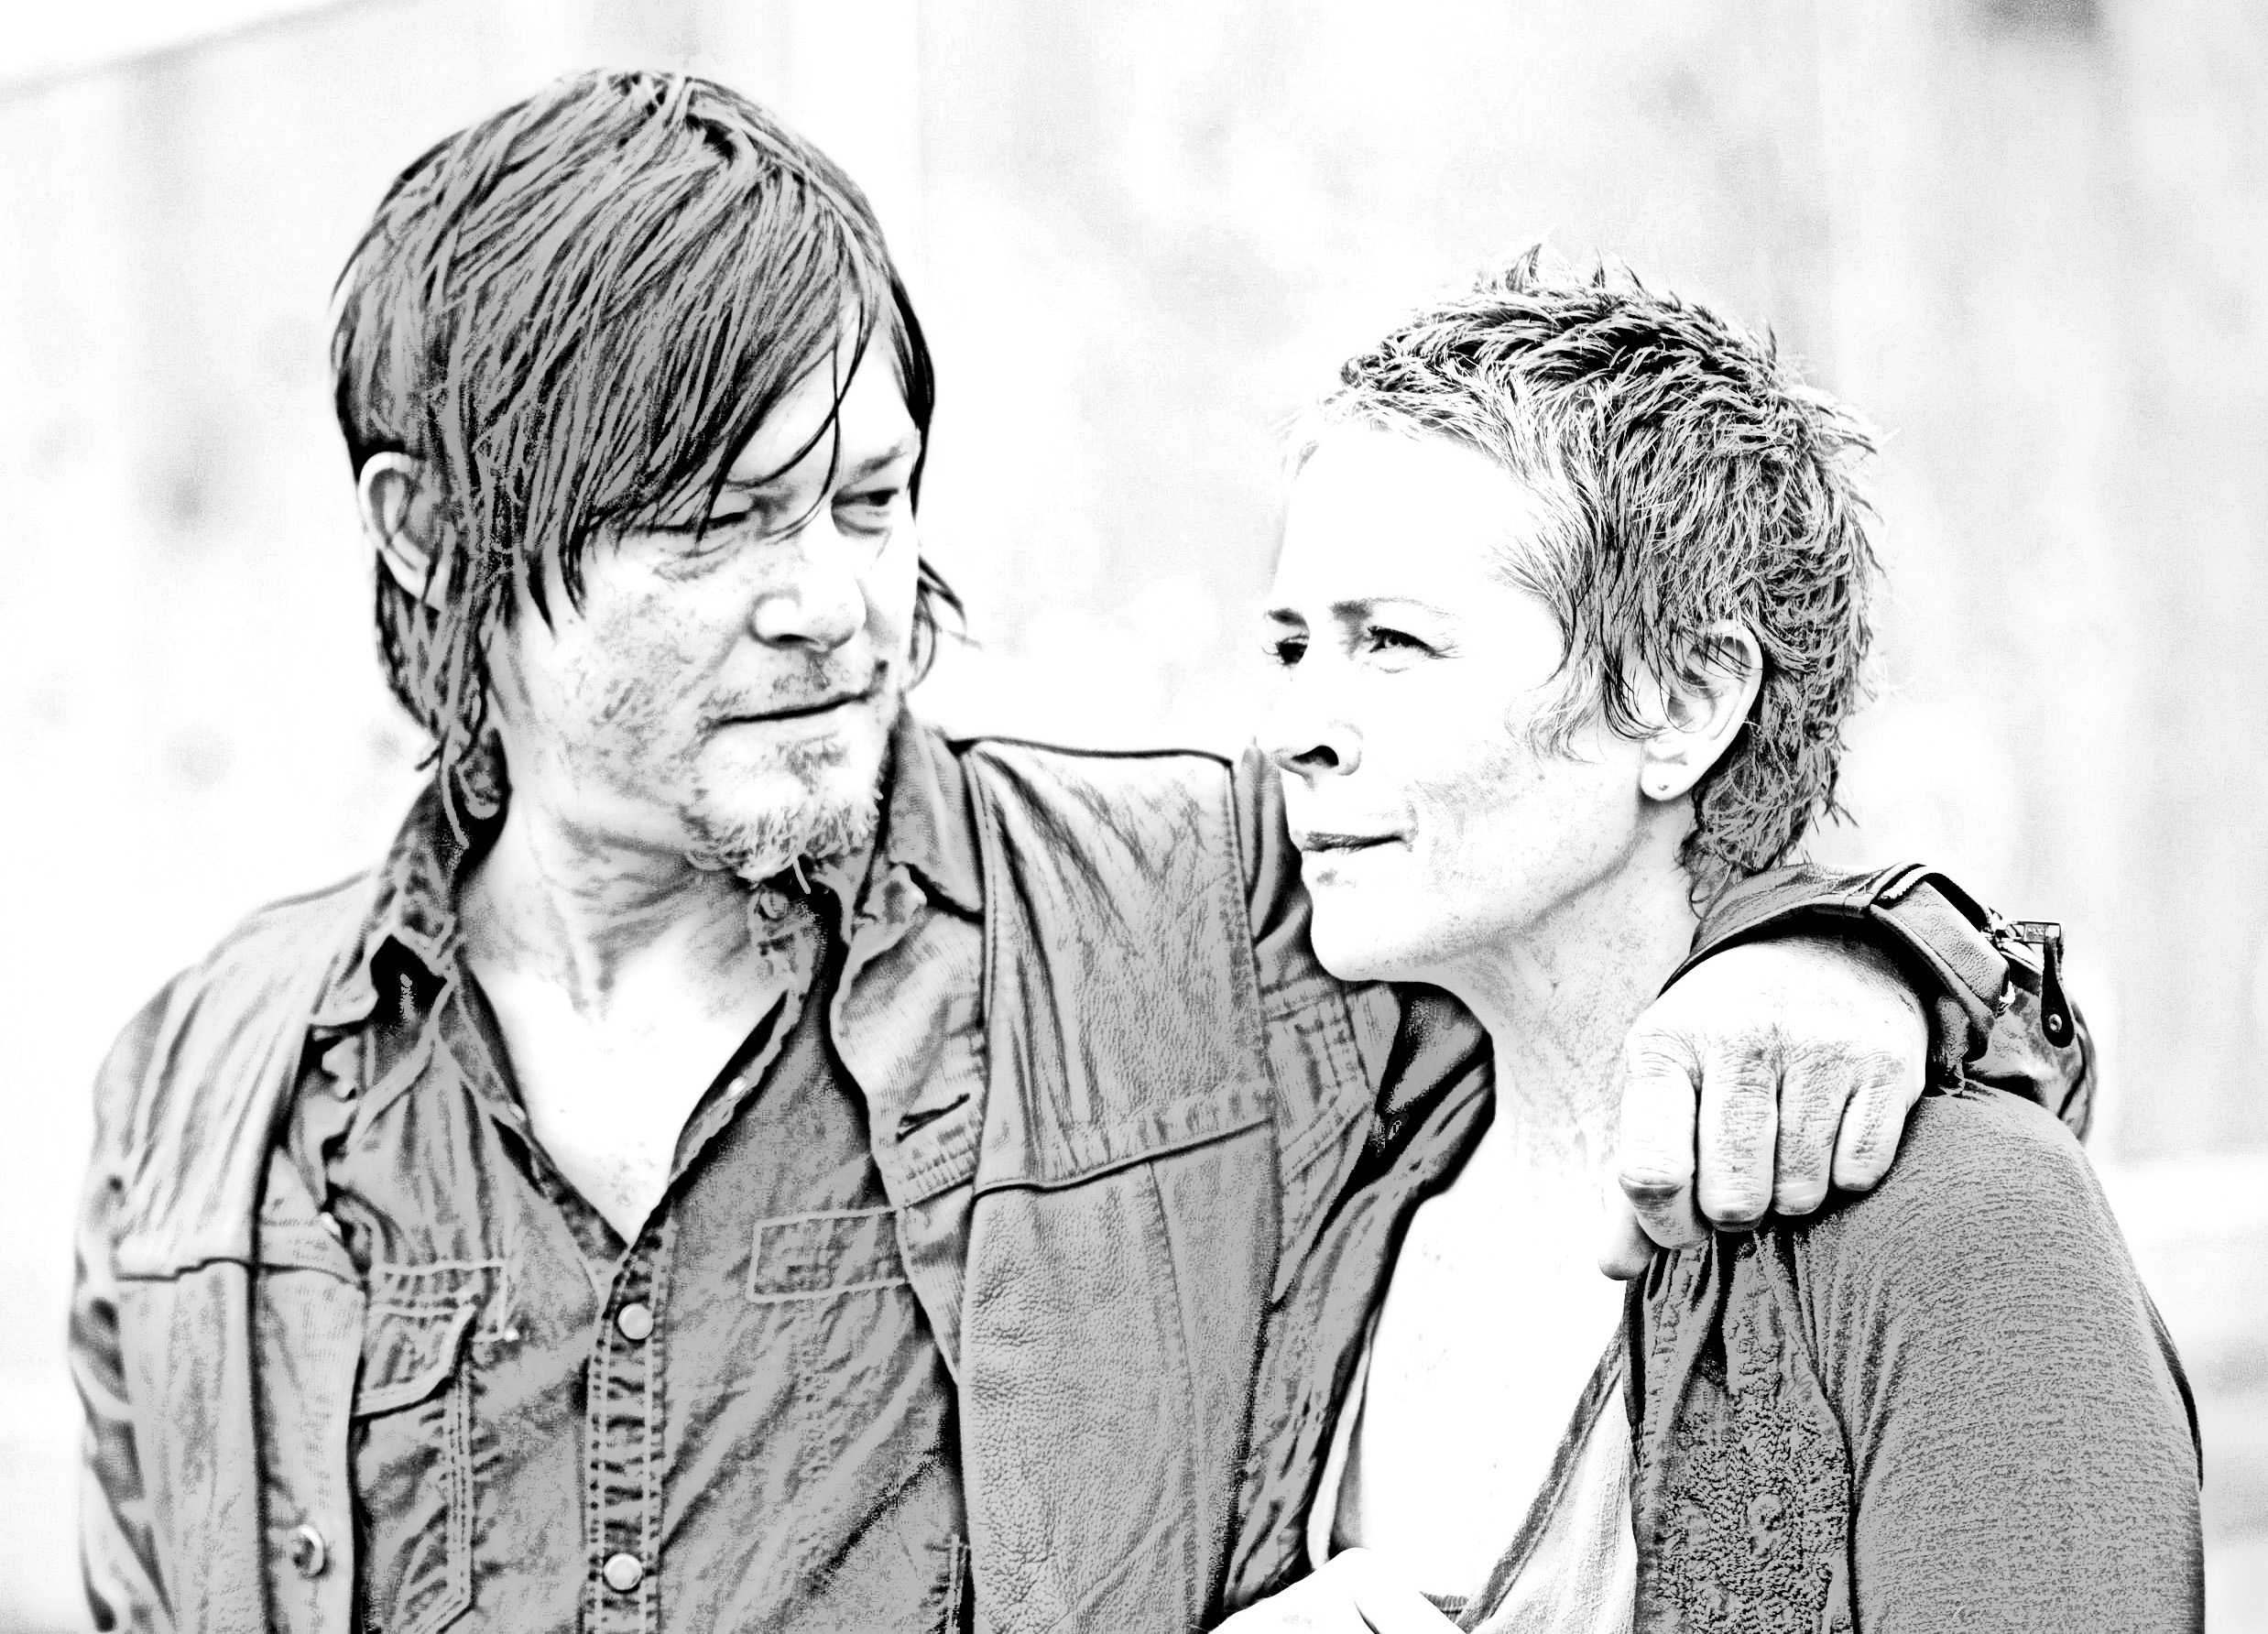 free walking dead coloring pages 503 service temporarily unavailable coloring books the free walking dead pages coloring